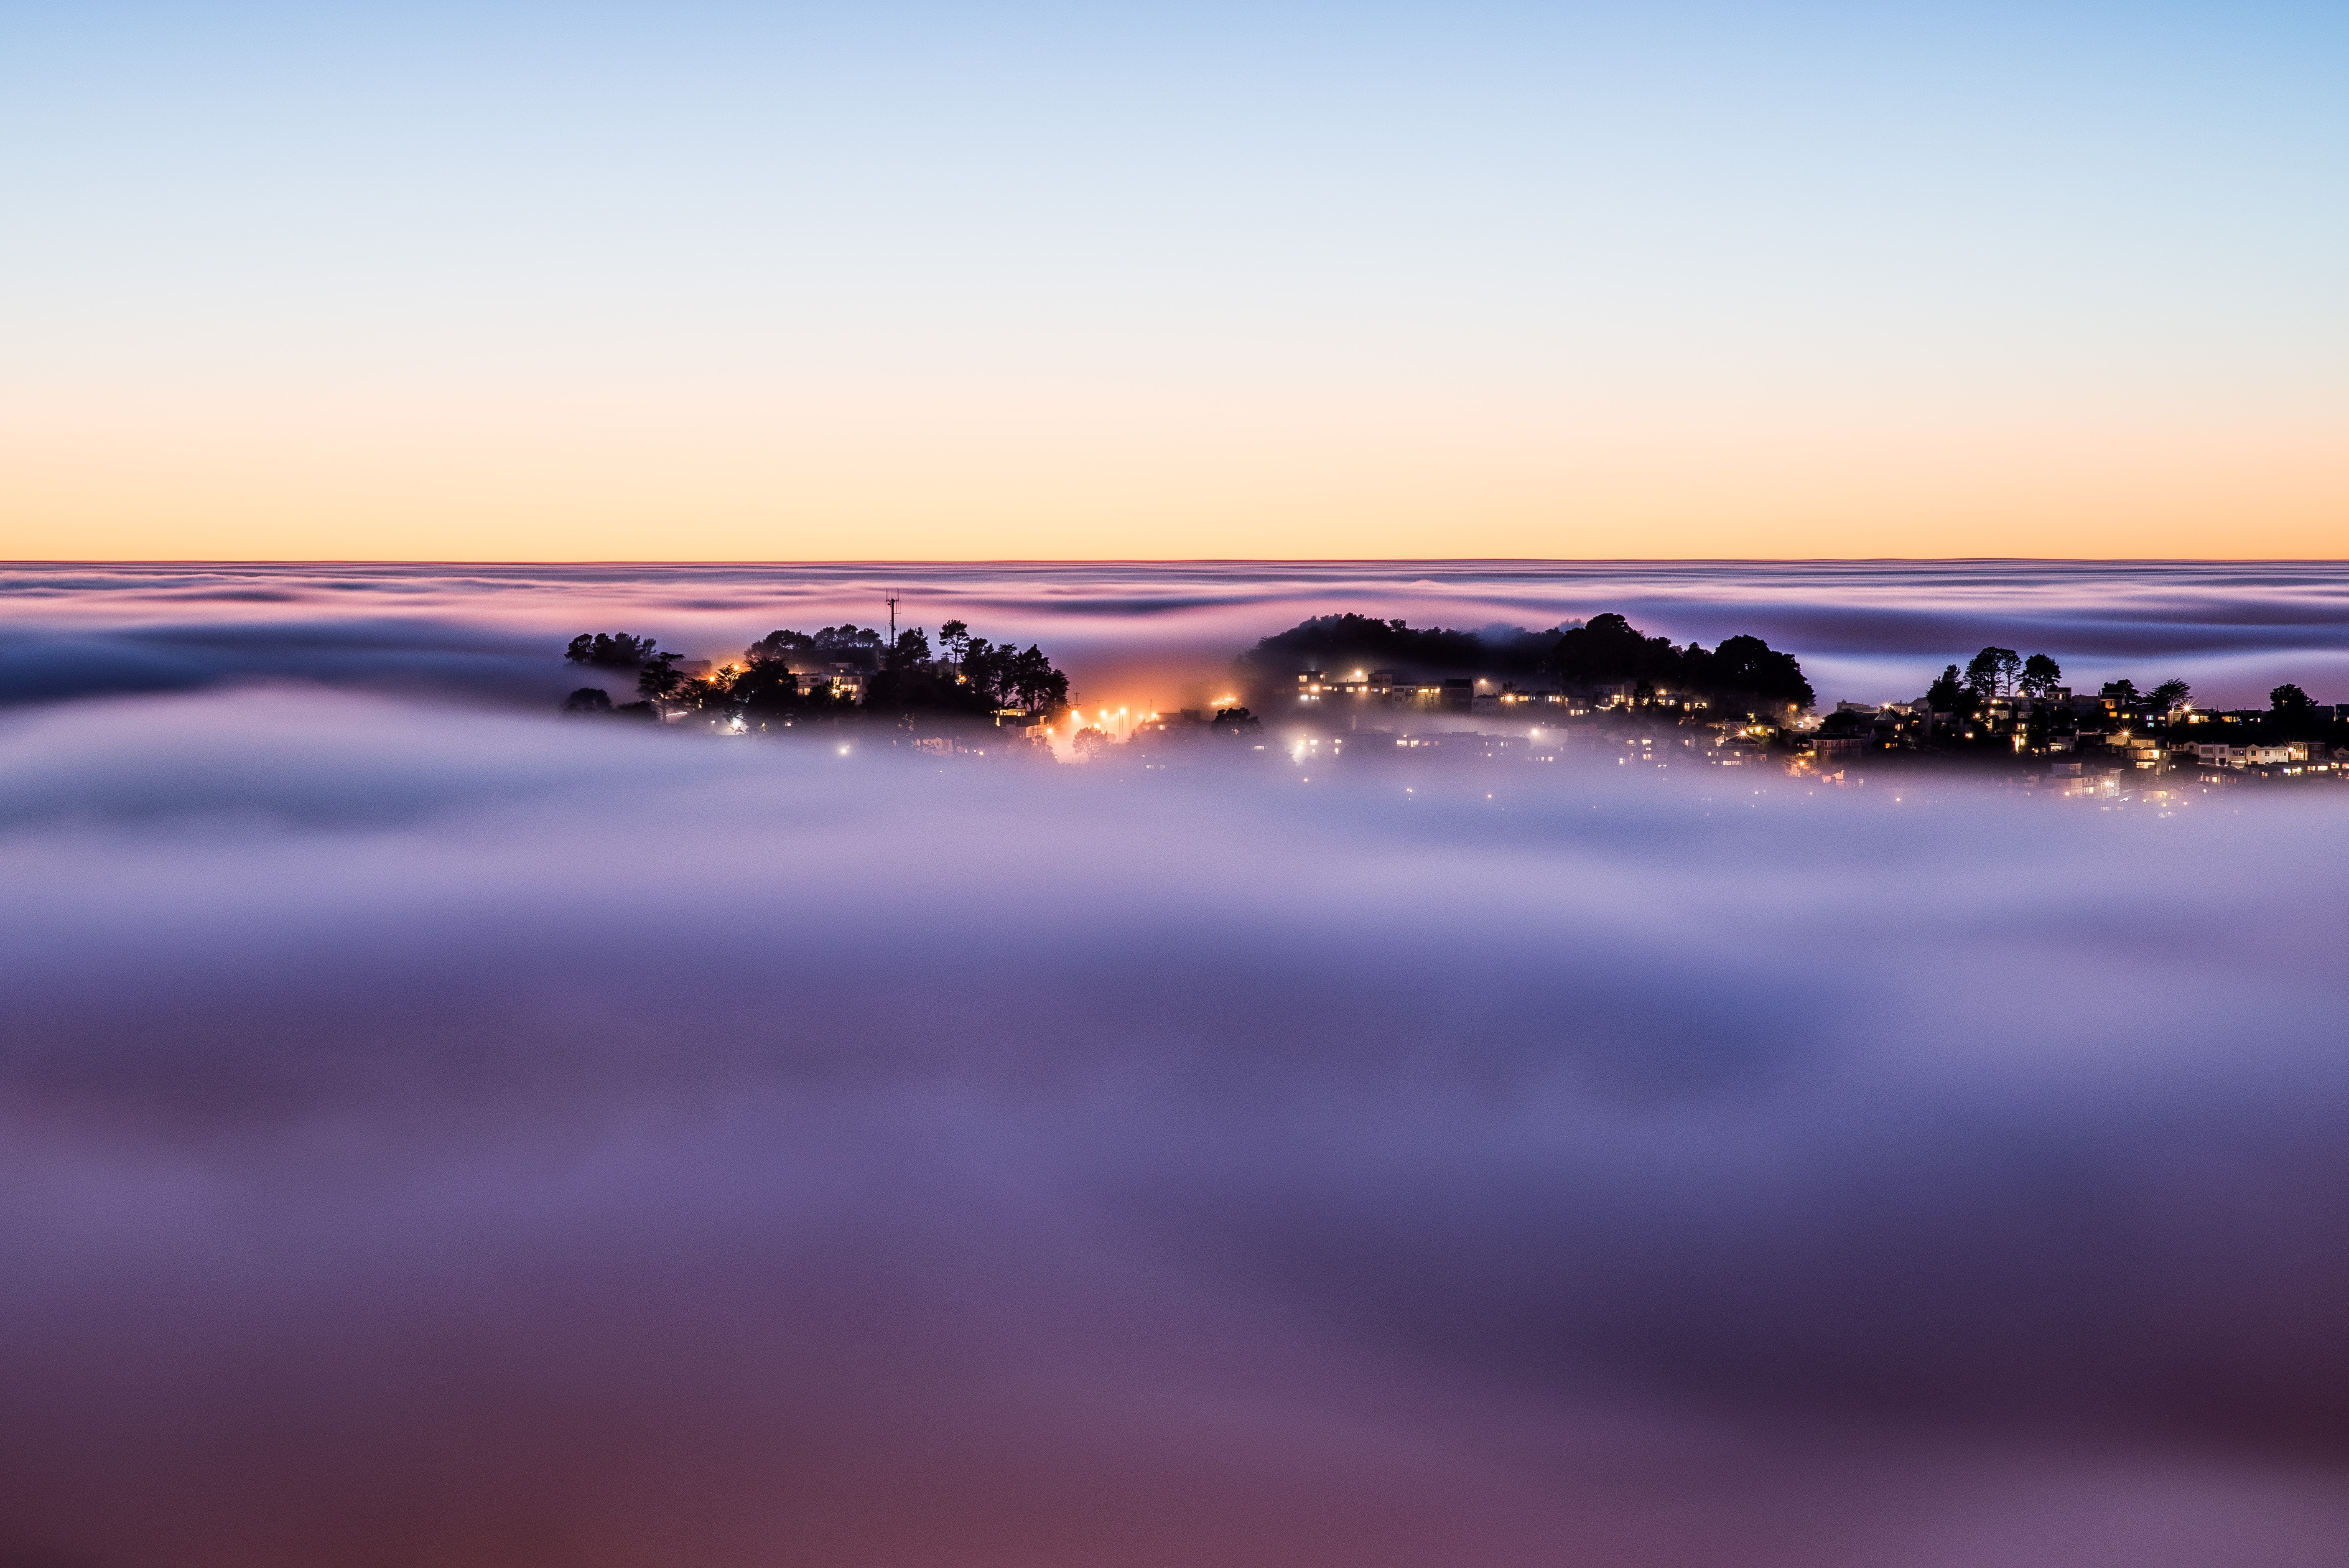 The foggy sunrise over Twin Peaks in San Francisco